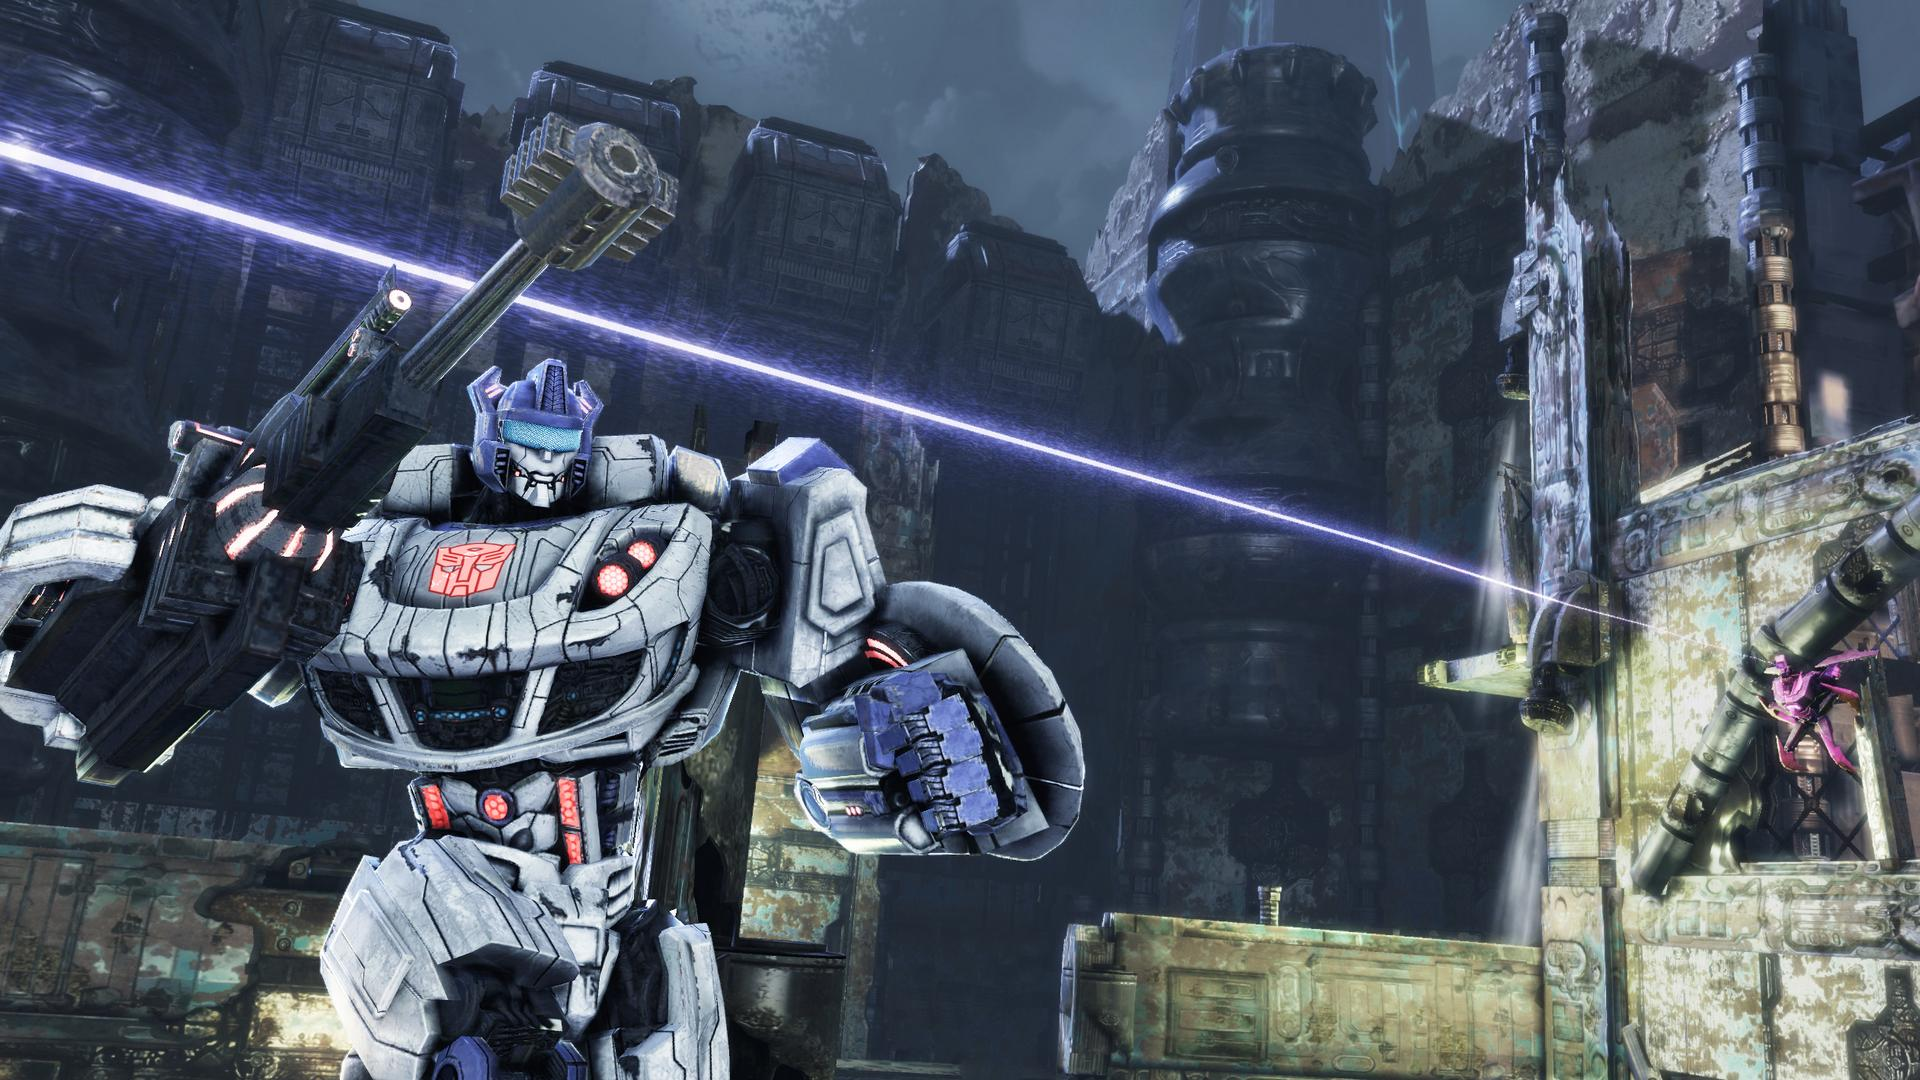 Fall Of Cybertron Wallpaper Tfw2005 Fall Of Cybertron Hands On And Impressions